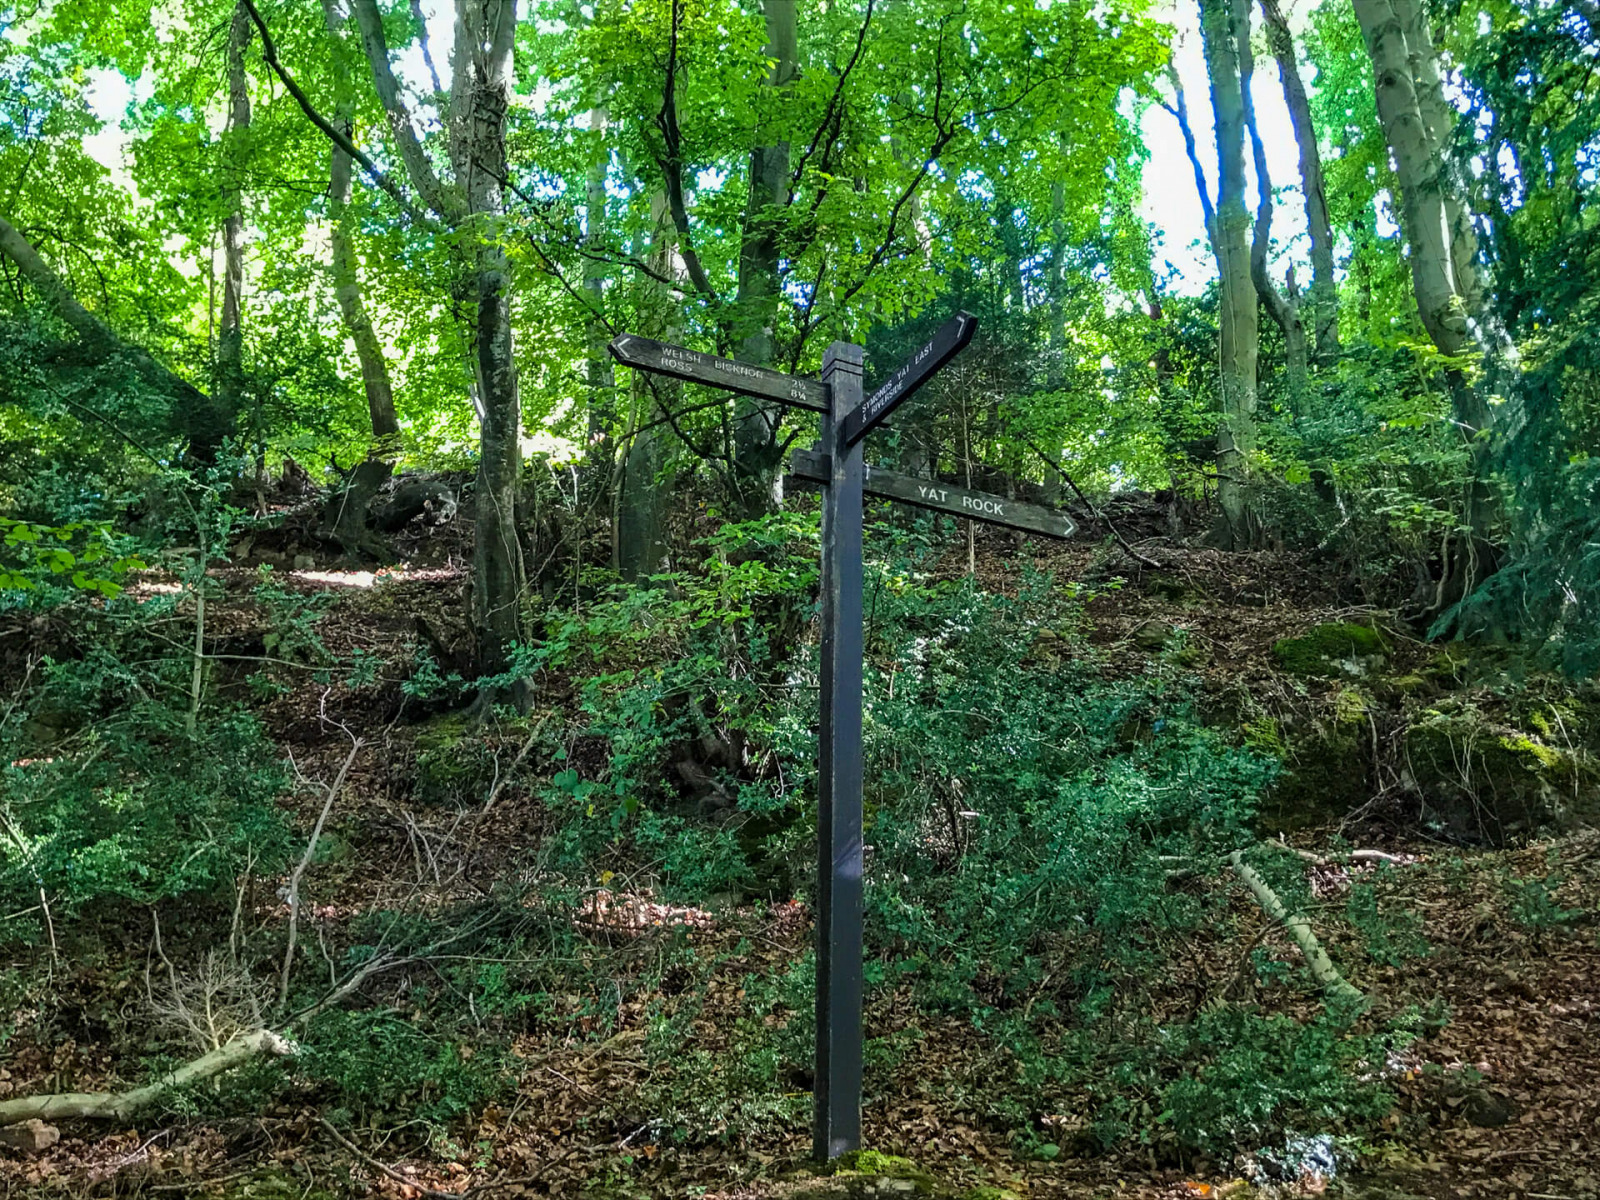 Walk-up-to-yat-rock-sign-post-wye-valley-